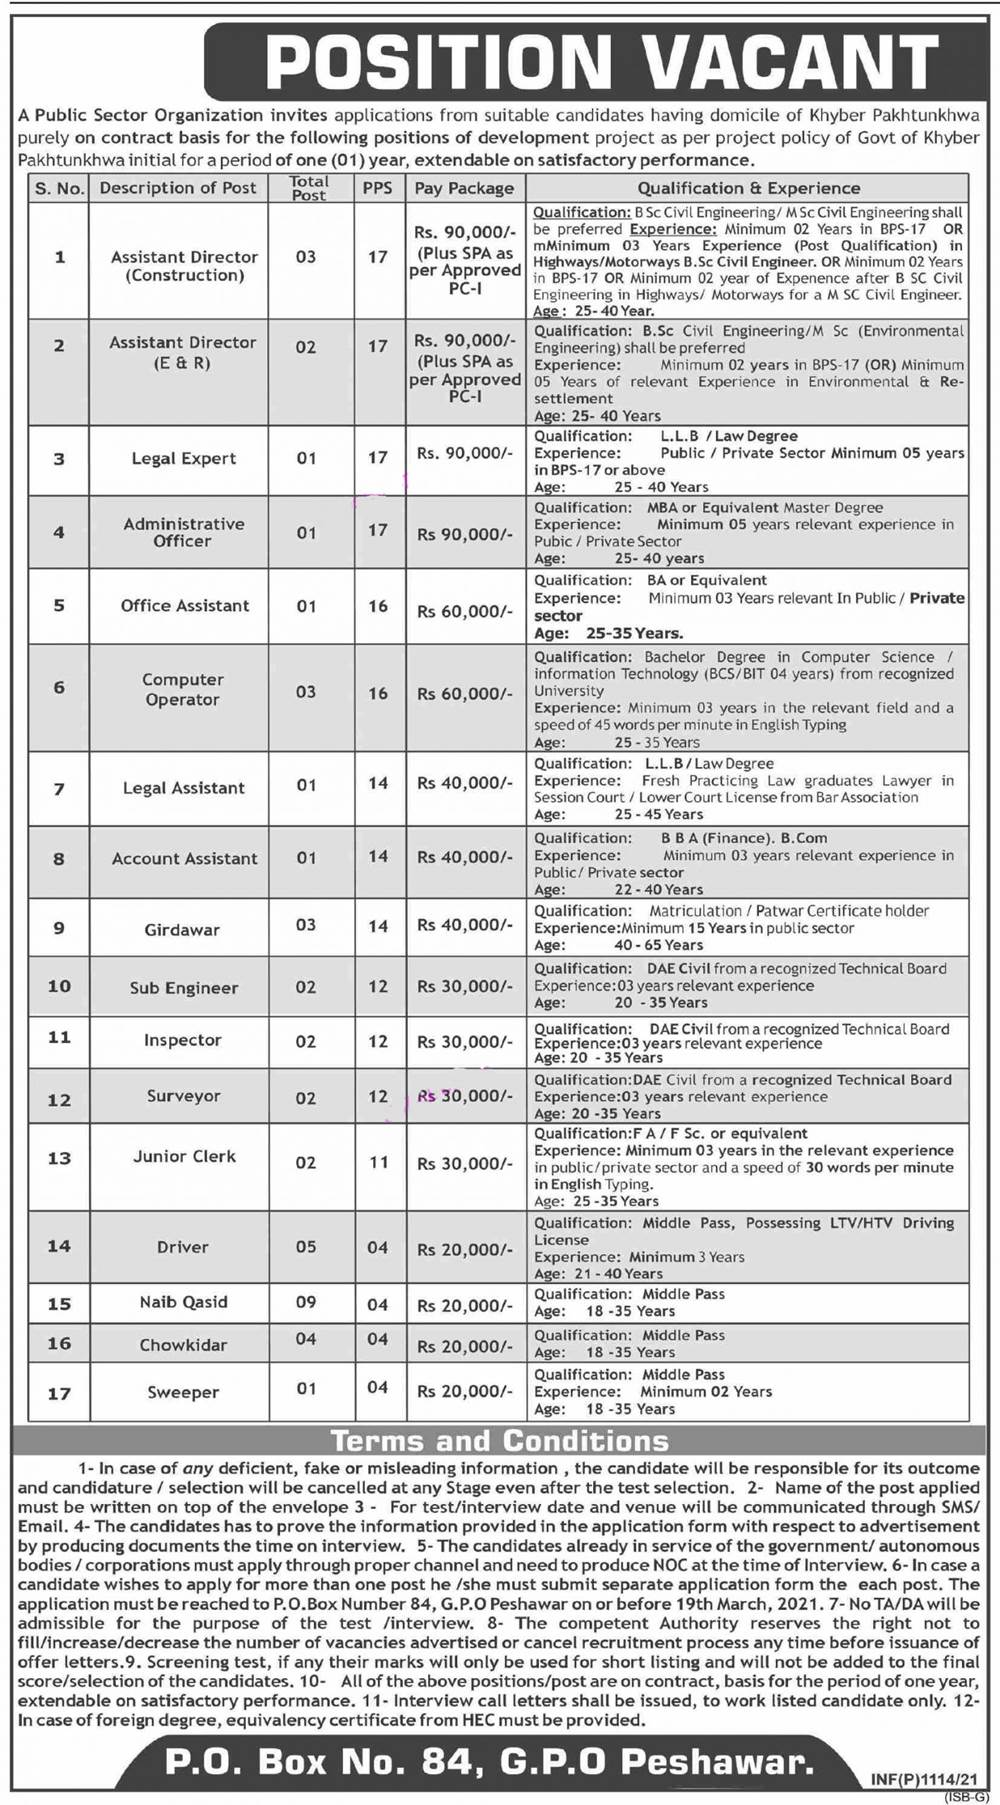 Public Sector Organization P.O Box 84 Peshawar Jobs 2021